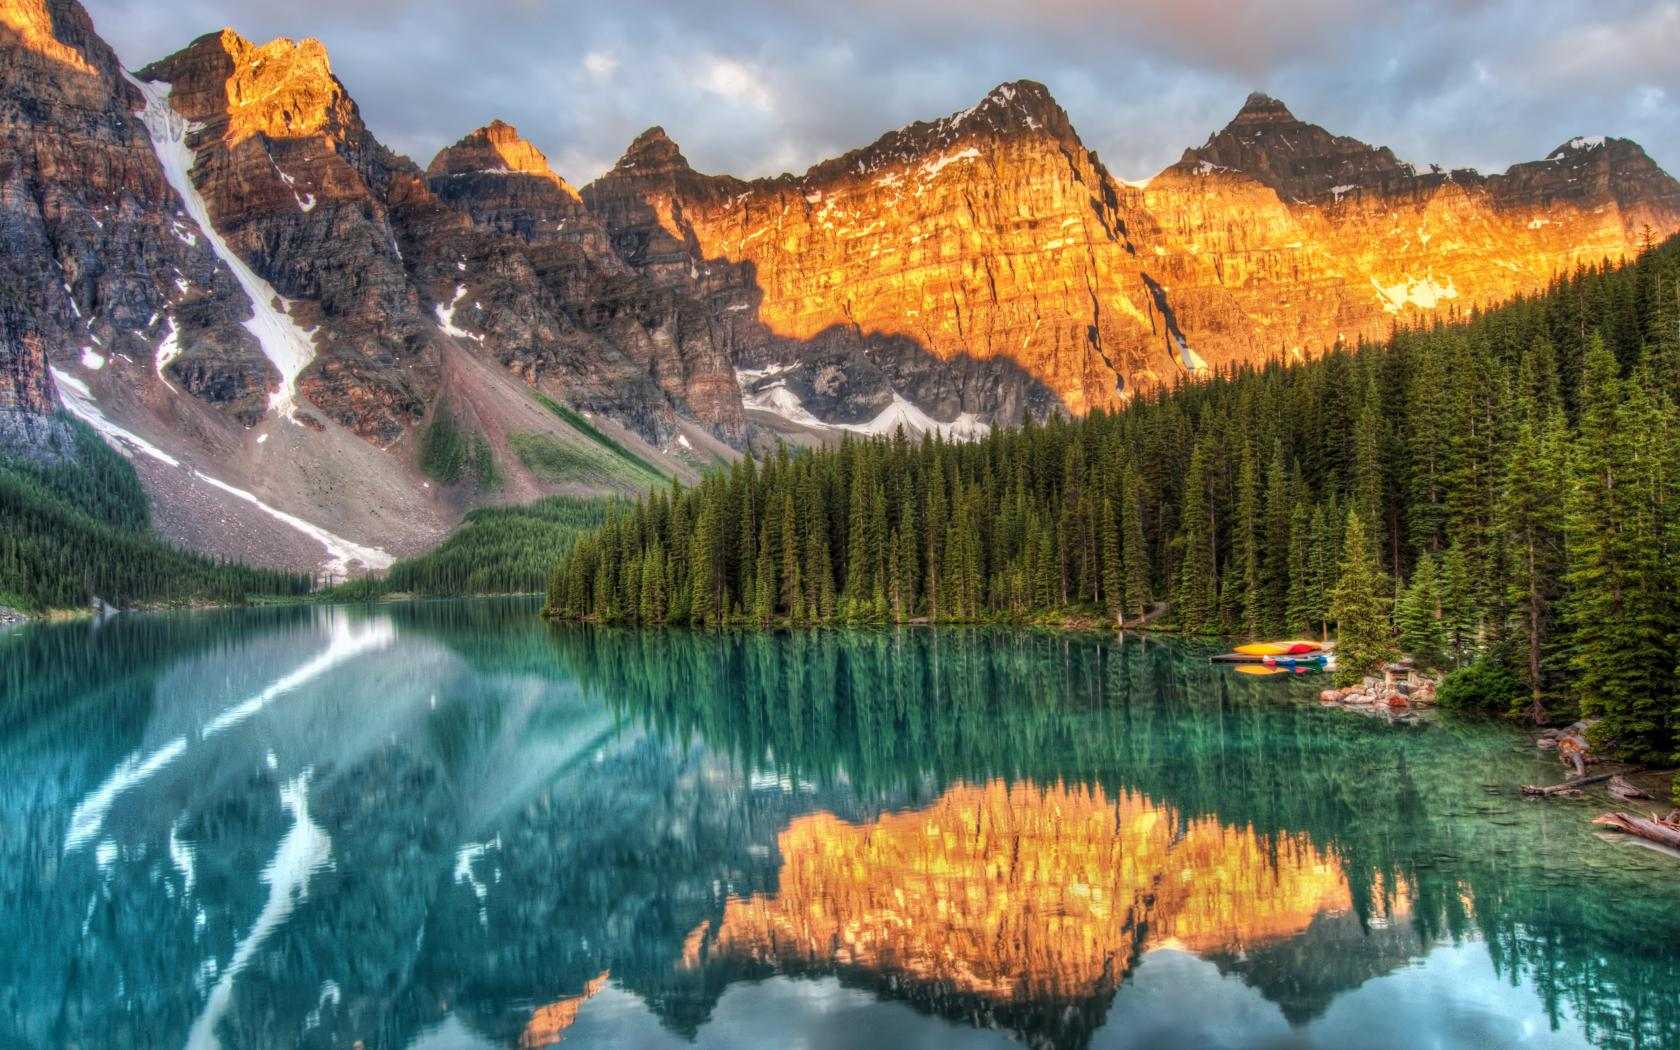 moraine banff national park   134868   High Quality and Resolution 1680x1050